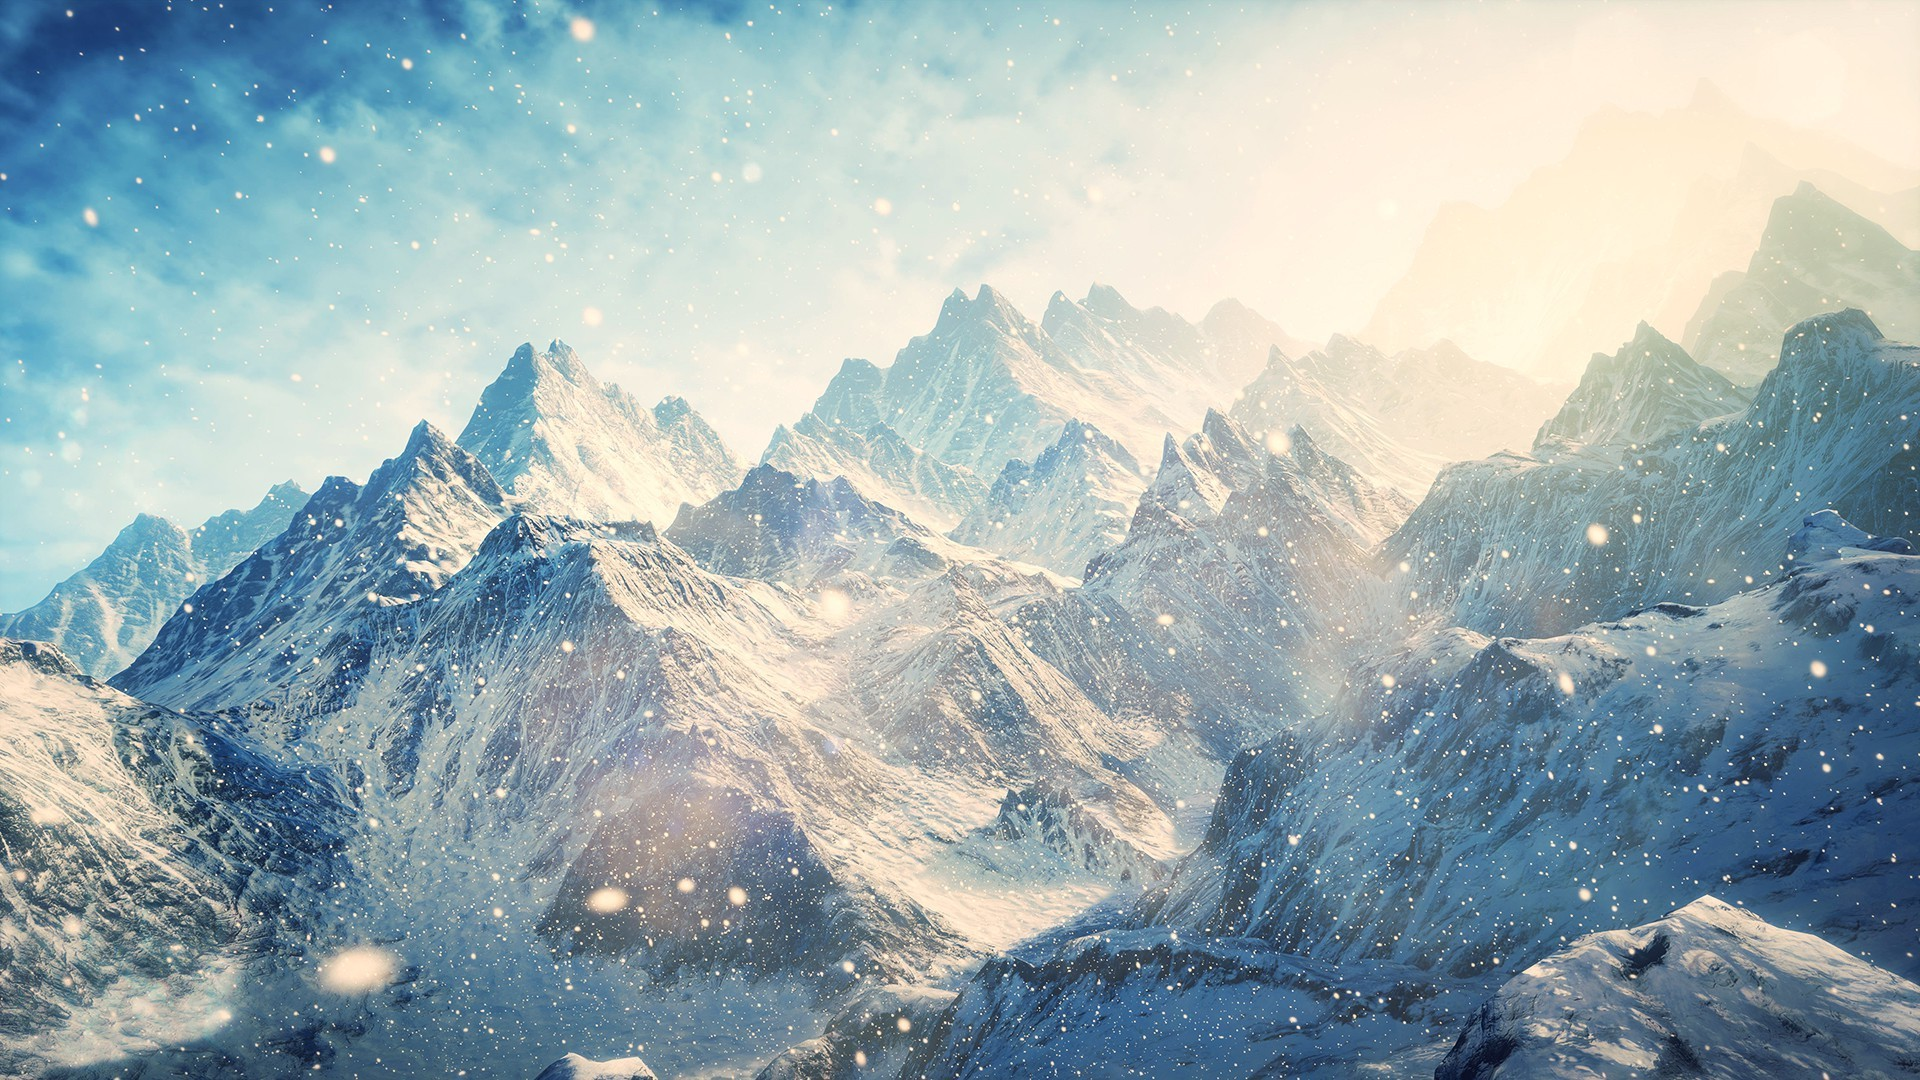 An Awesome Wallpaper Of Winter A Landscape For Your Desktop 1920x1080